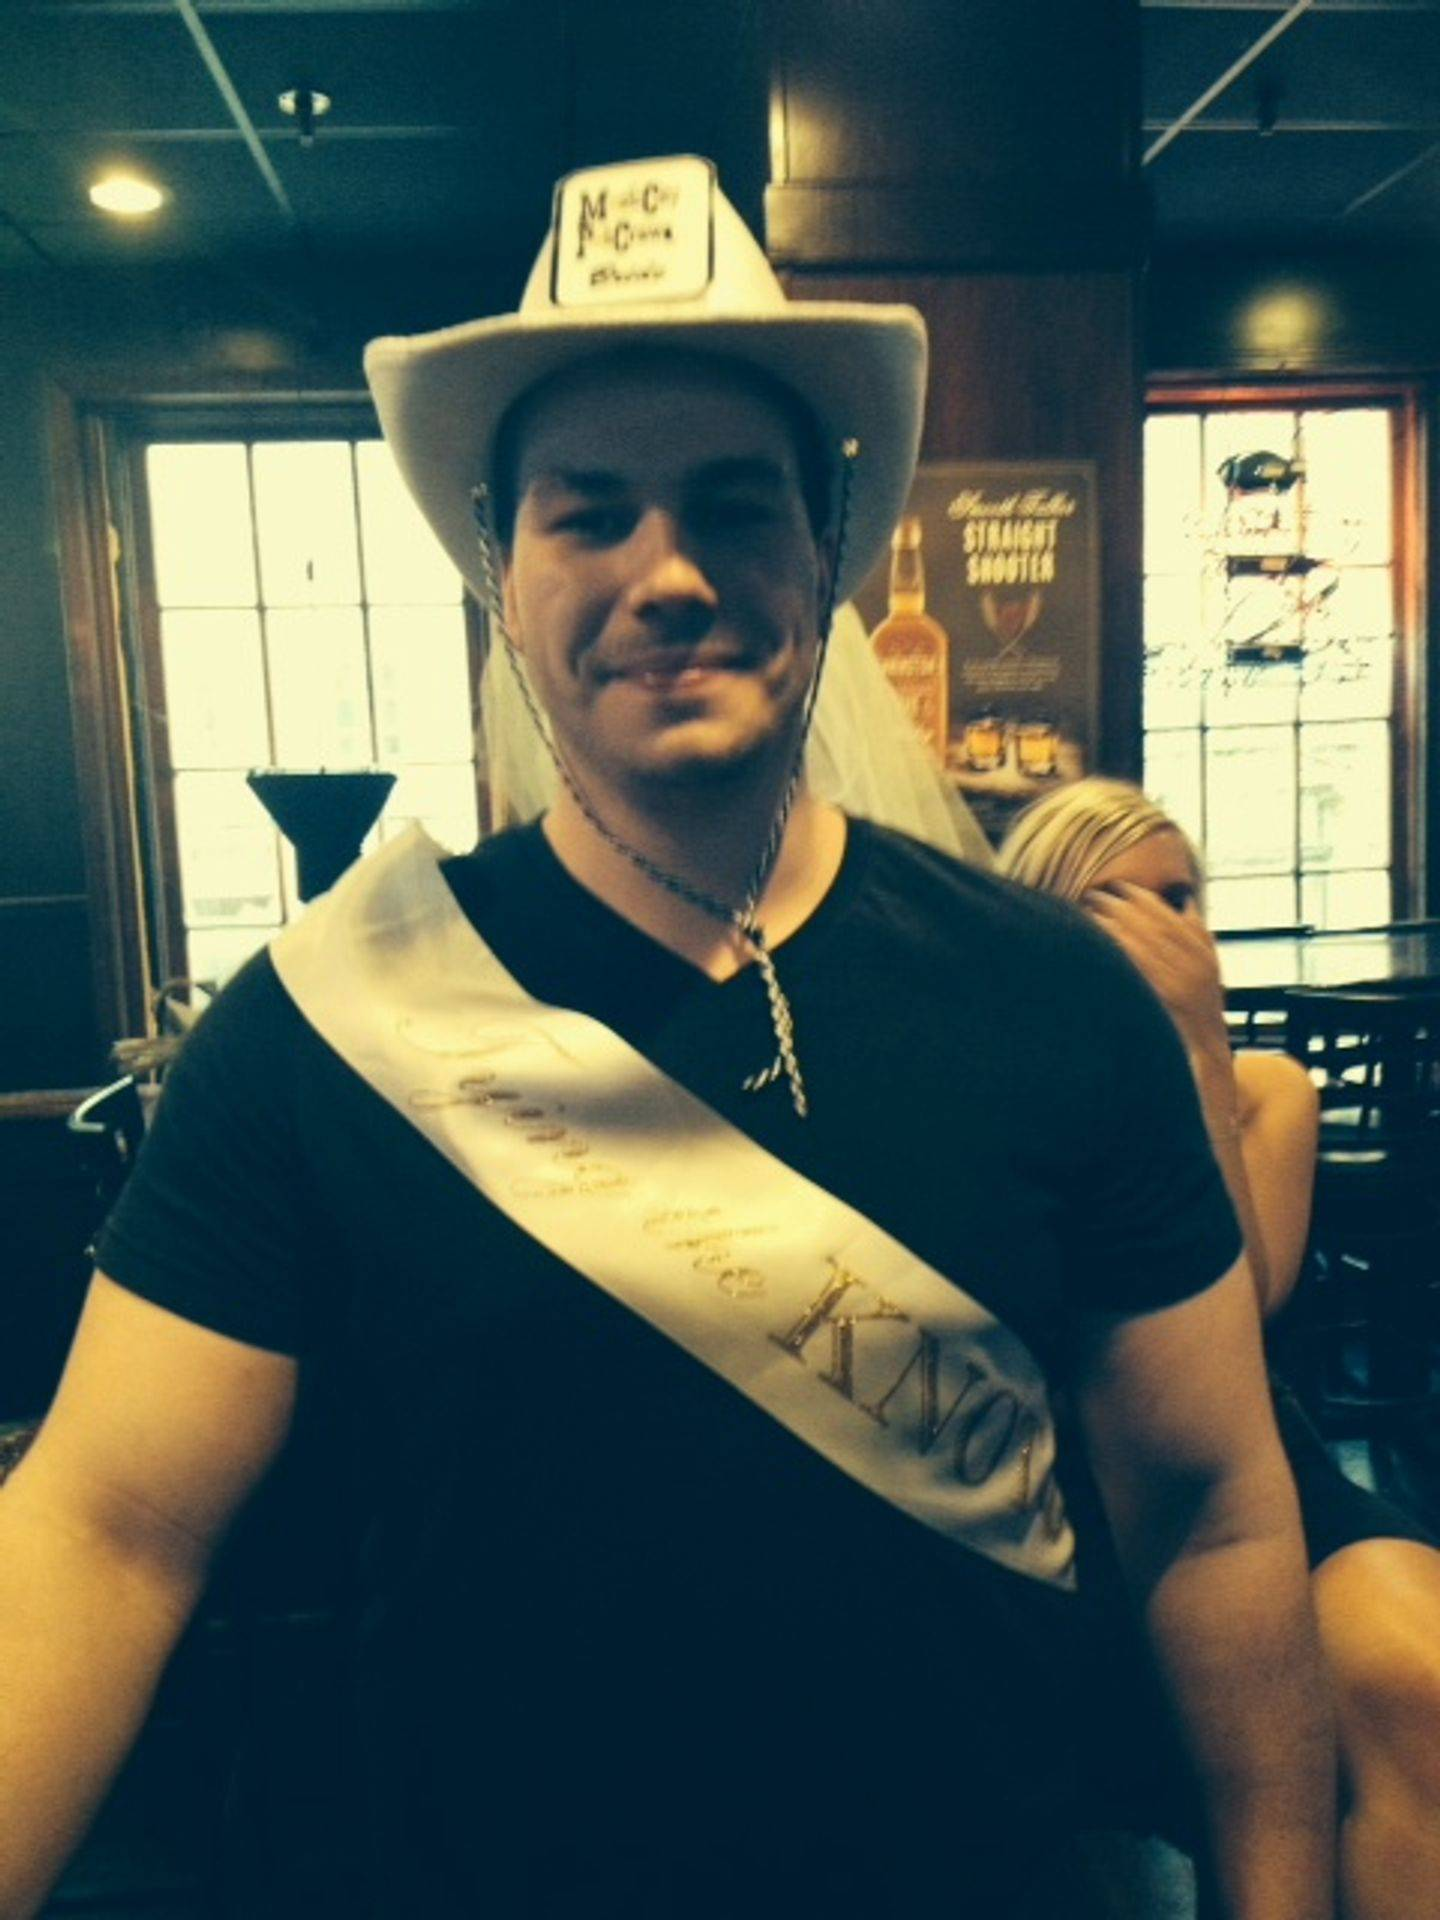 Daniel is the groom on this Nashville bar crawl